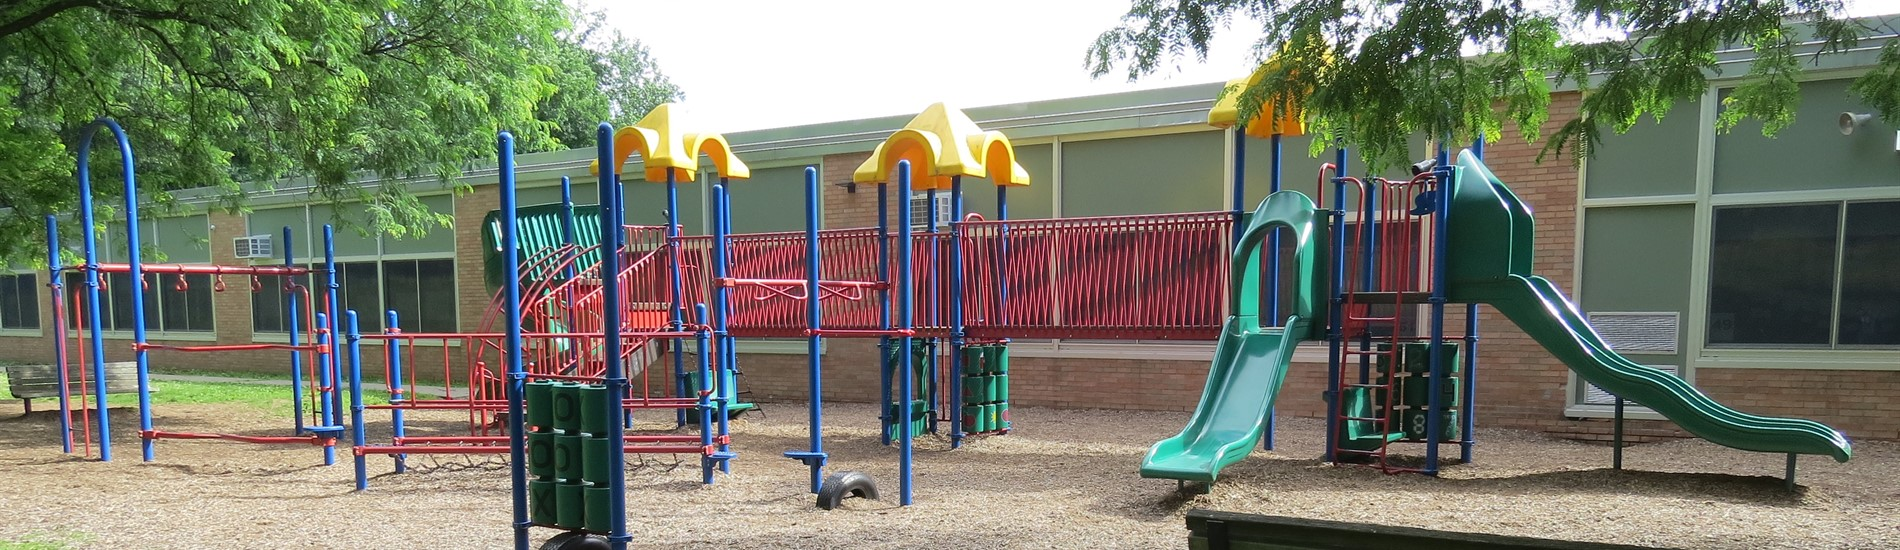 Dorchester upper playground